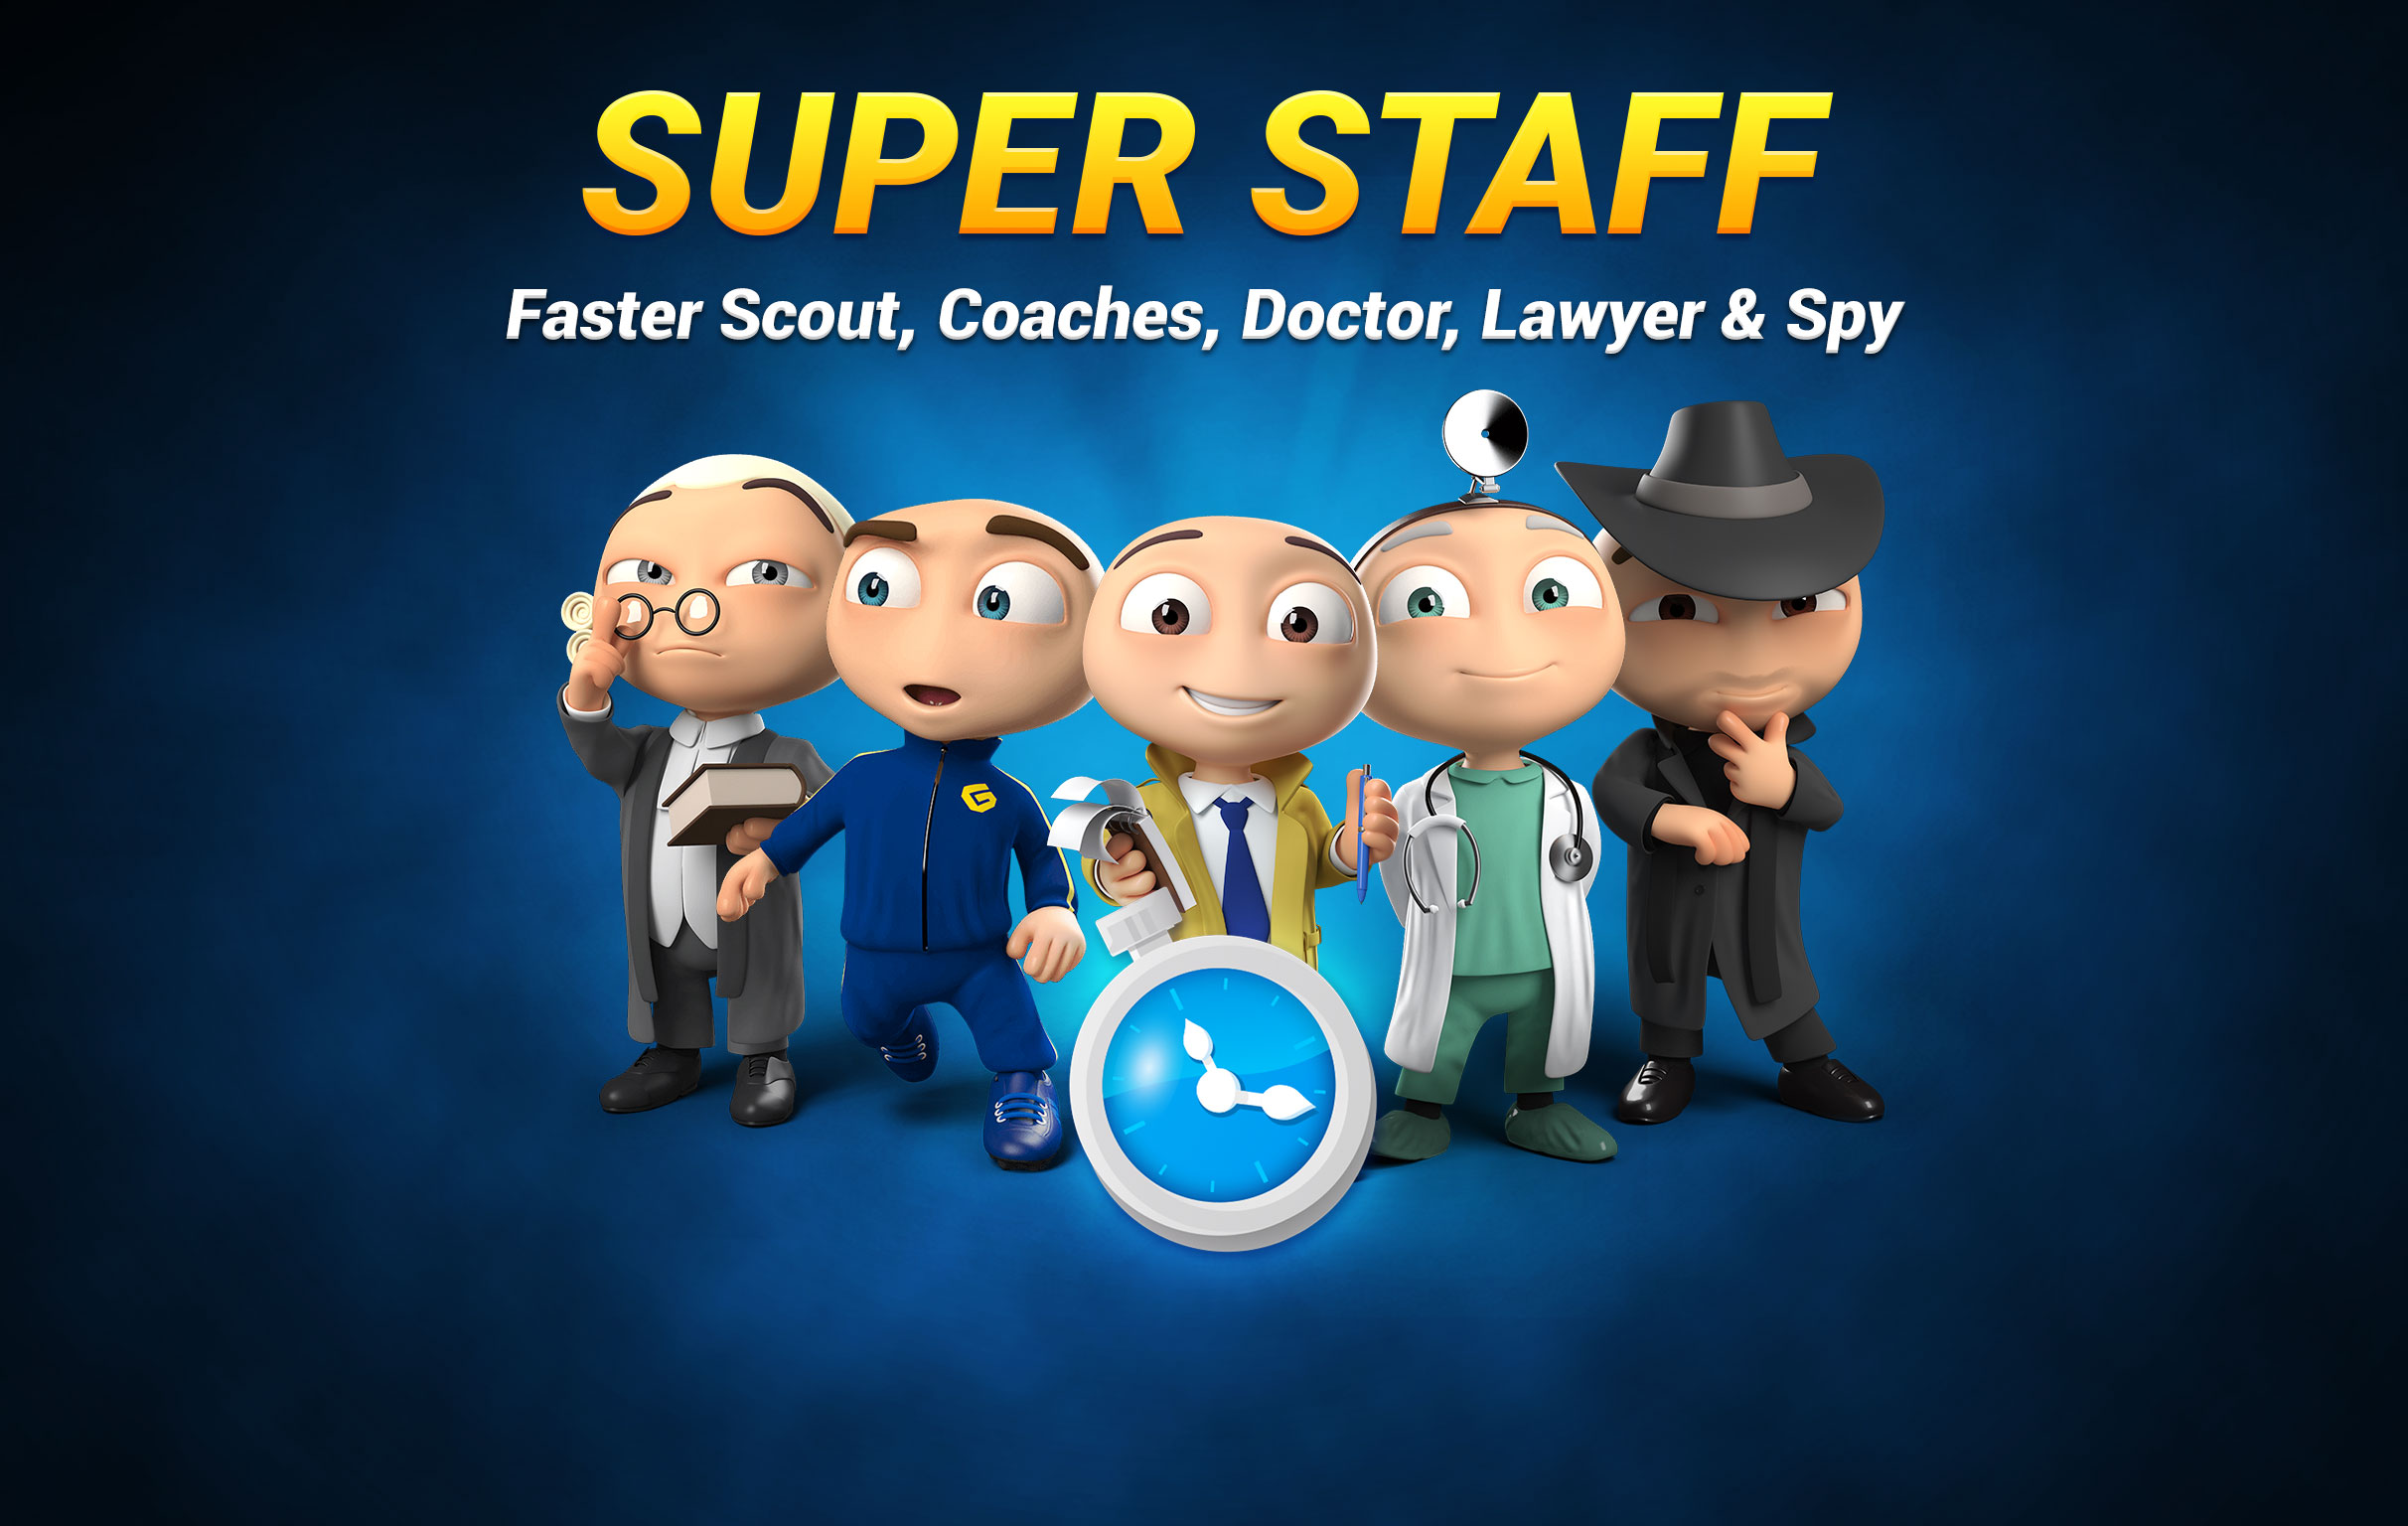 0_1555495261537_SuperStaff2_EN.jpg